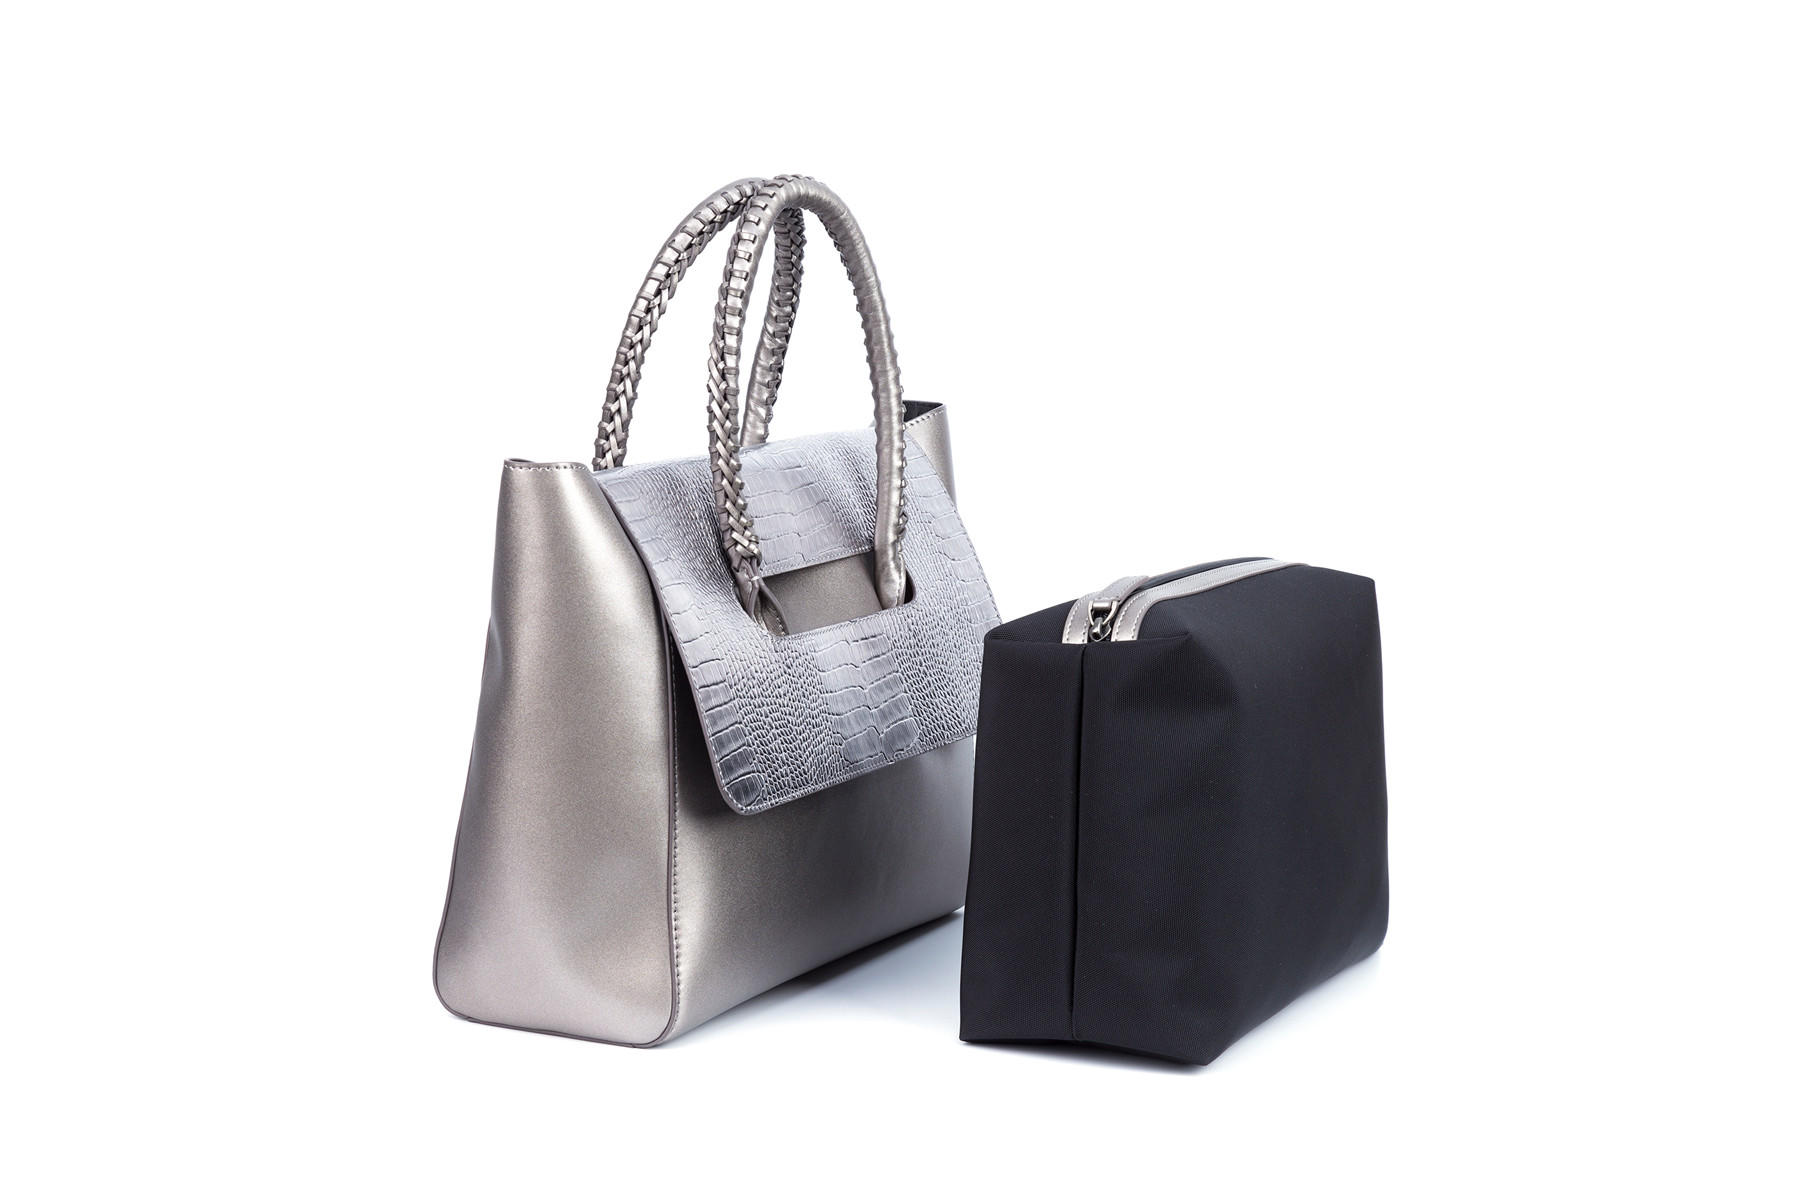 GF bags zipper close cute handbags closure for women